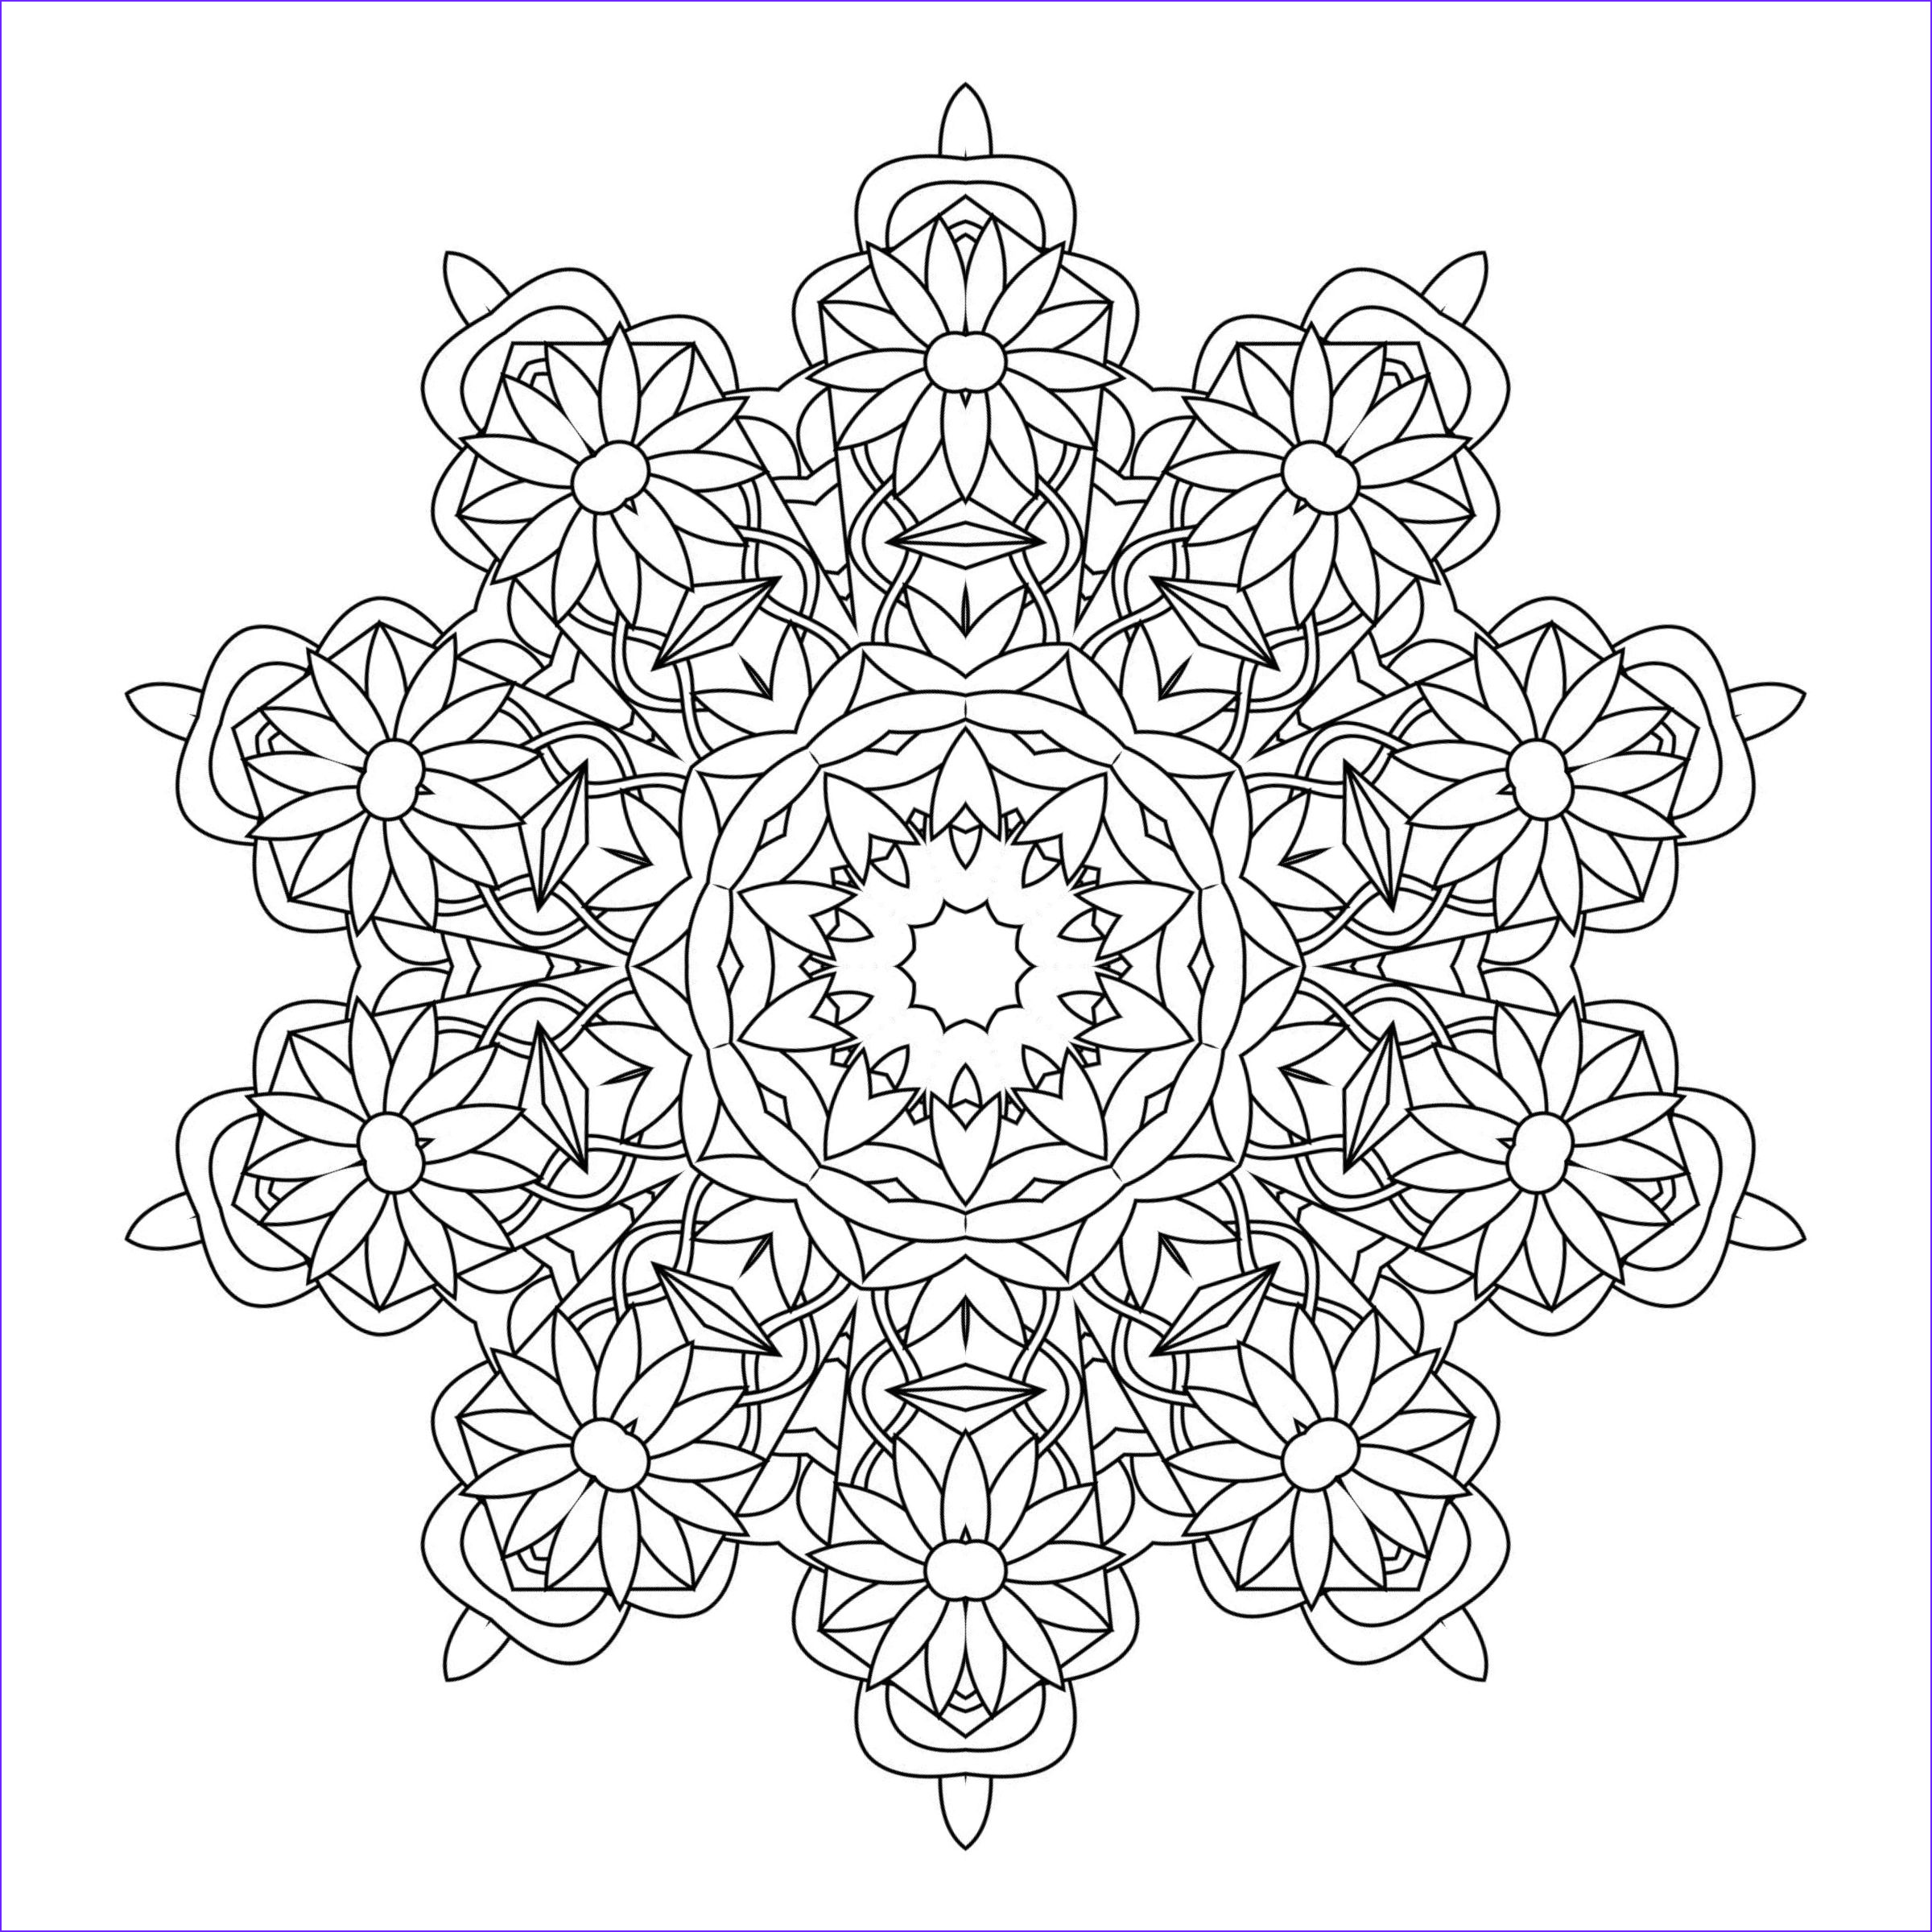 Adult Coloring Books Download Luxury Stock Free Coloring Page to Print and Color